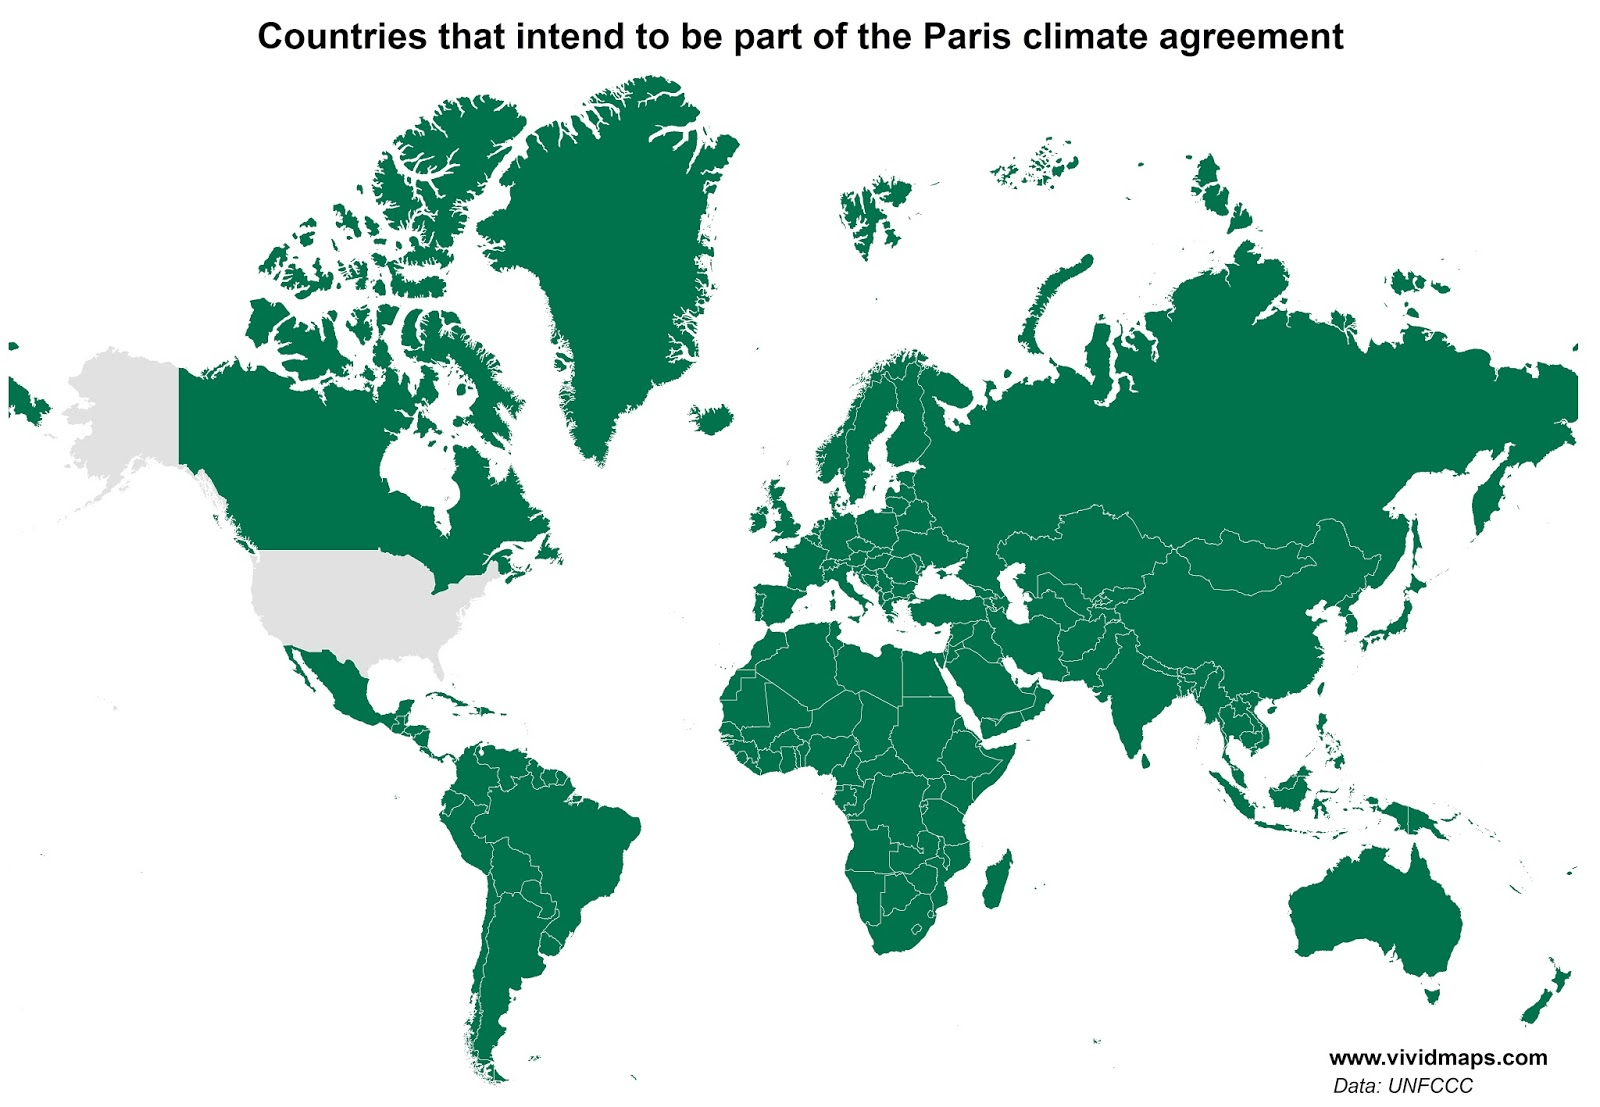 All countries have signed Paris agreement except the U.S. Ecoclimax